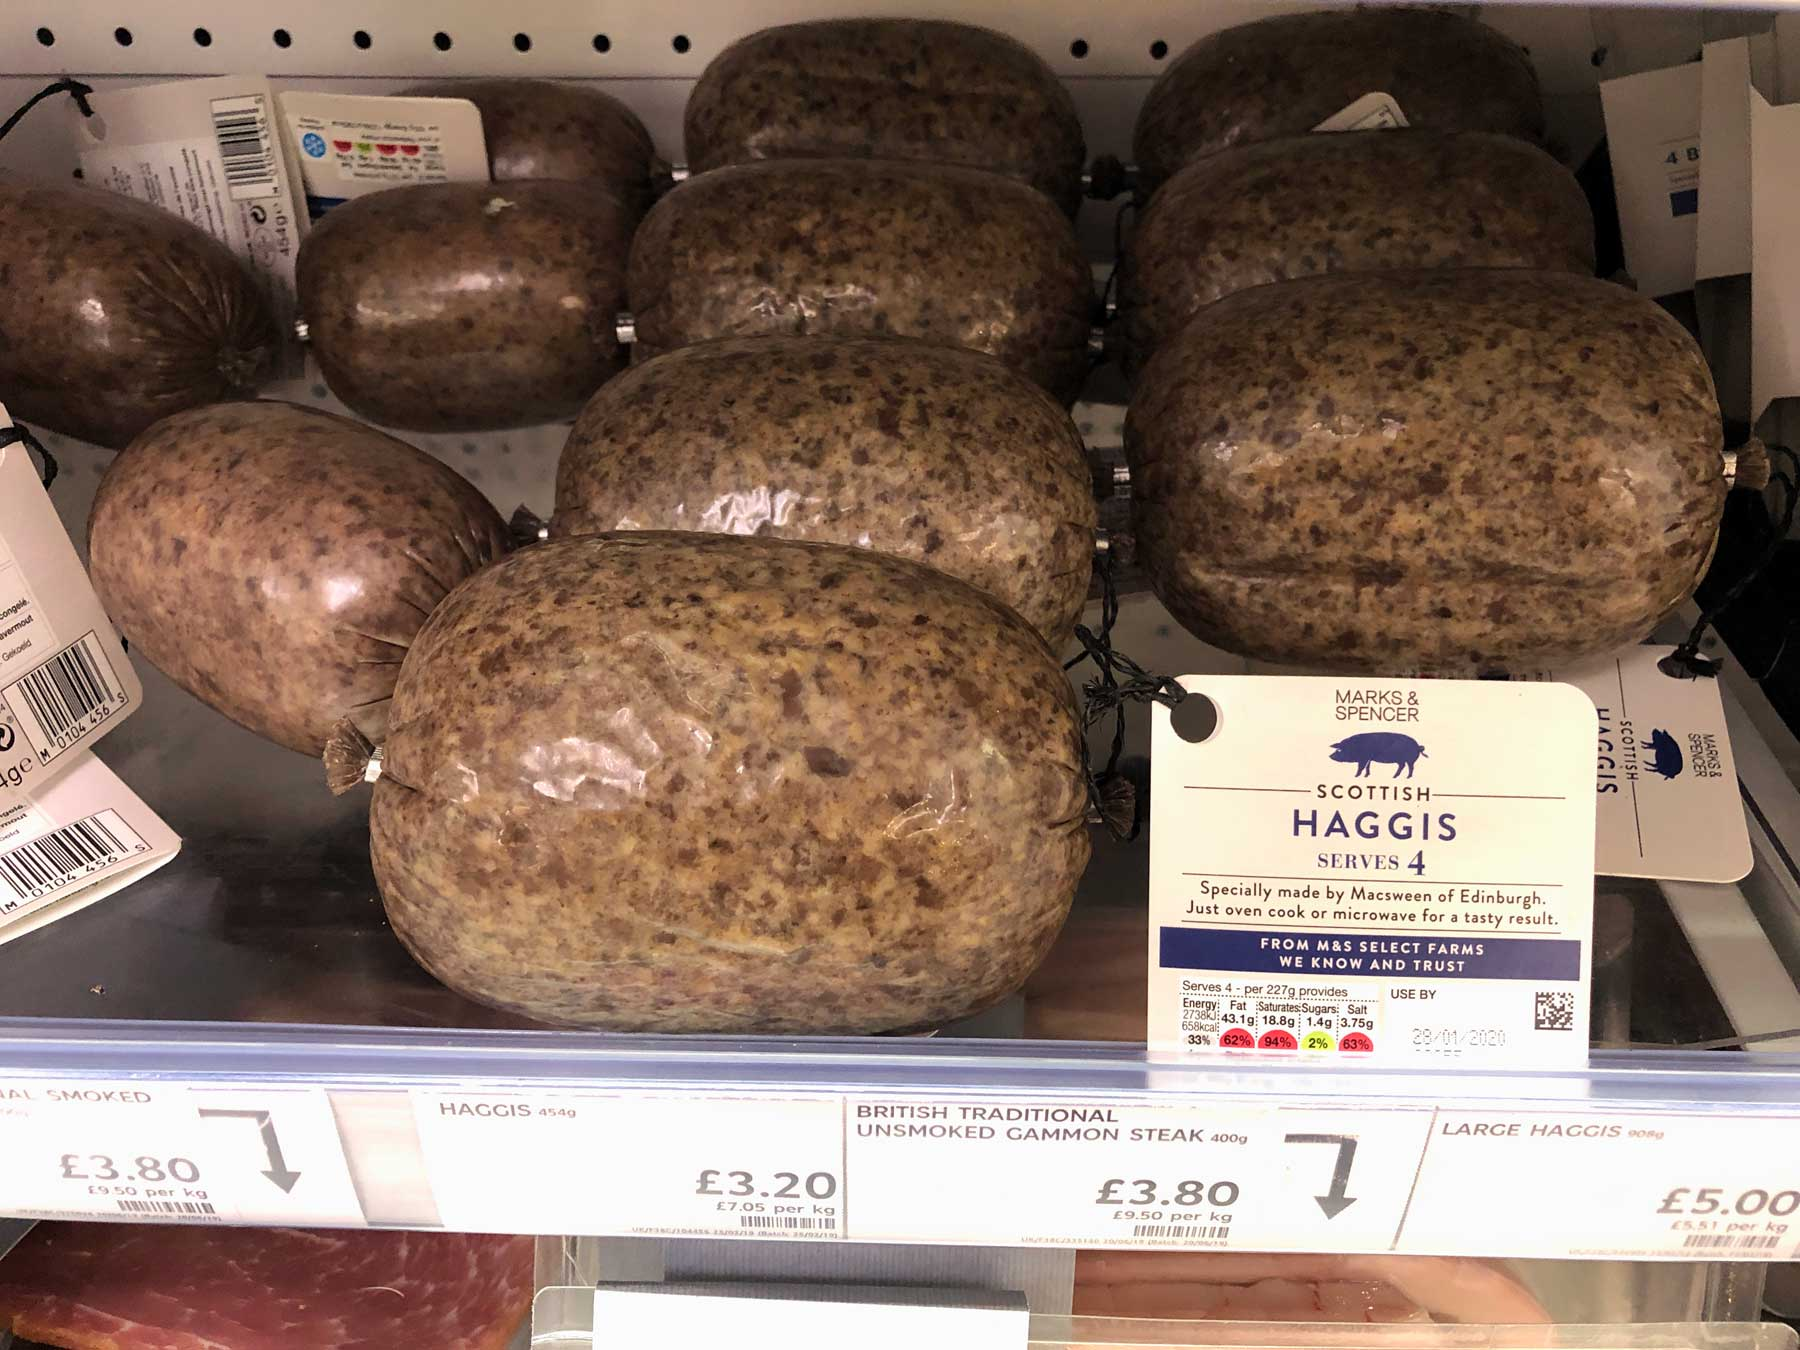 Fresh haggis in assorted sizes at Marks and Spencers